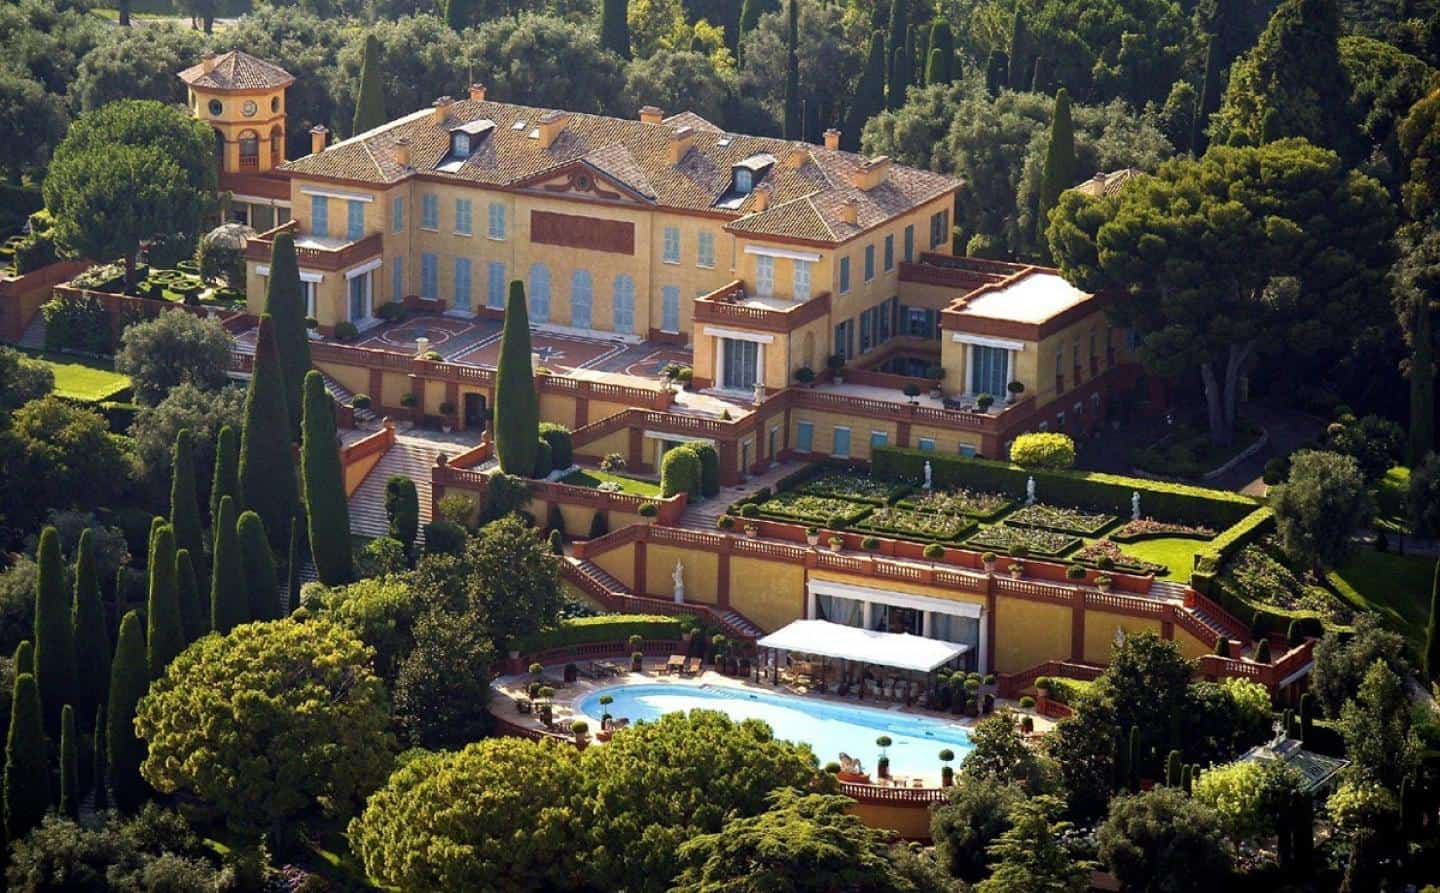 Biggest Houses in the World - Villa Leopolda, French Riviera, France